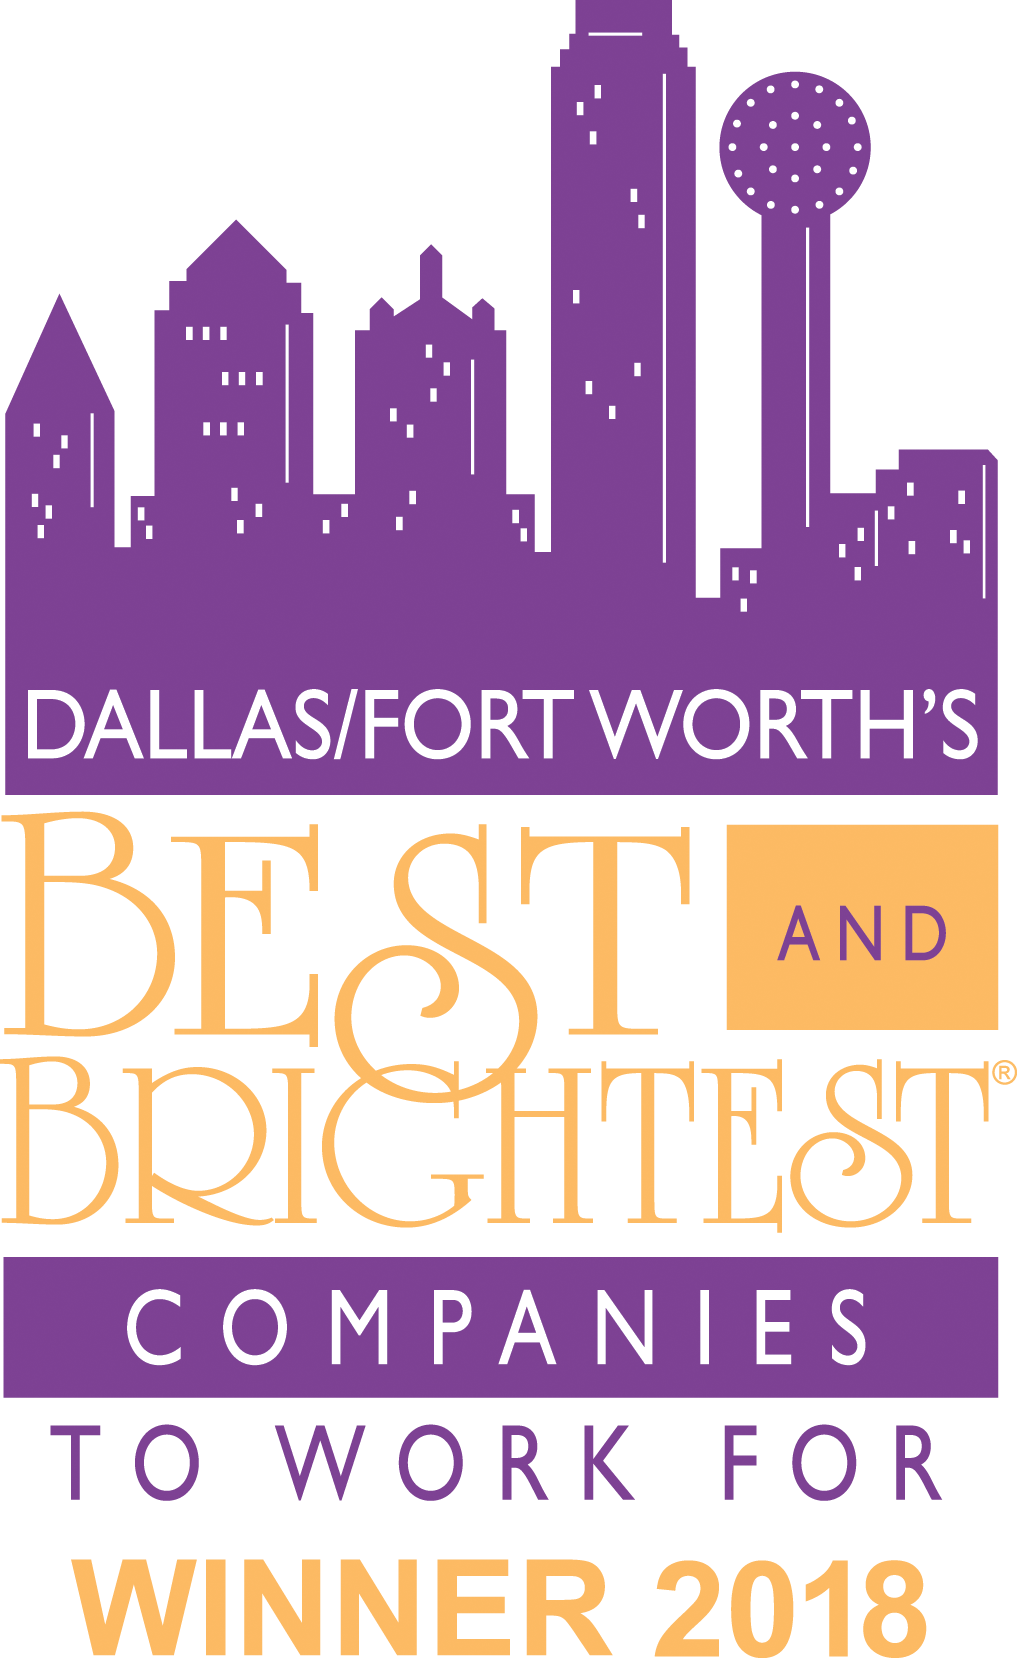 Best and Brightest Companies to Work For, Dallas-Fort Worth 2018, National Association for Business Resources